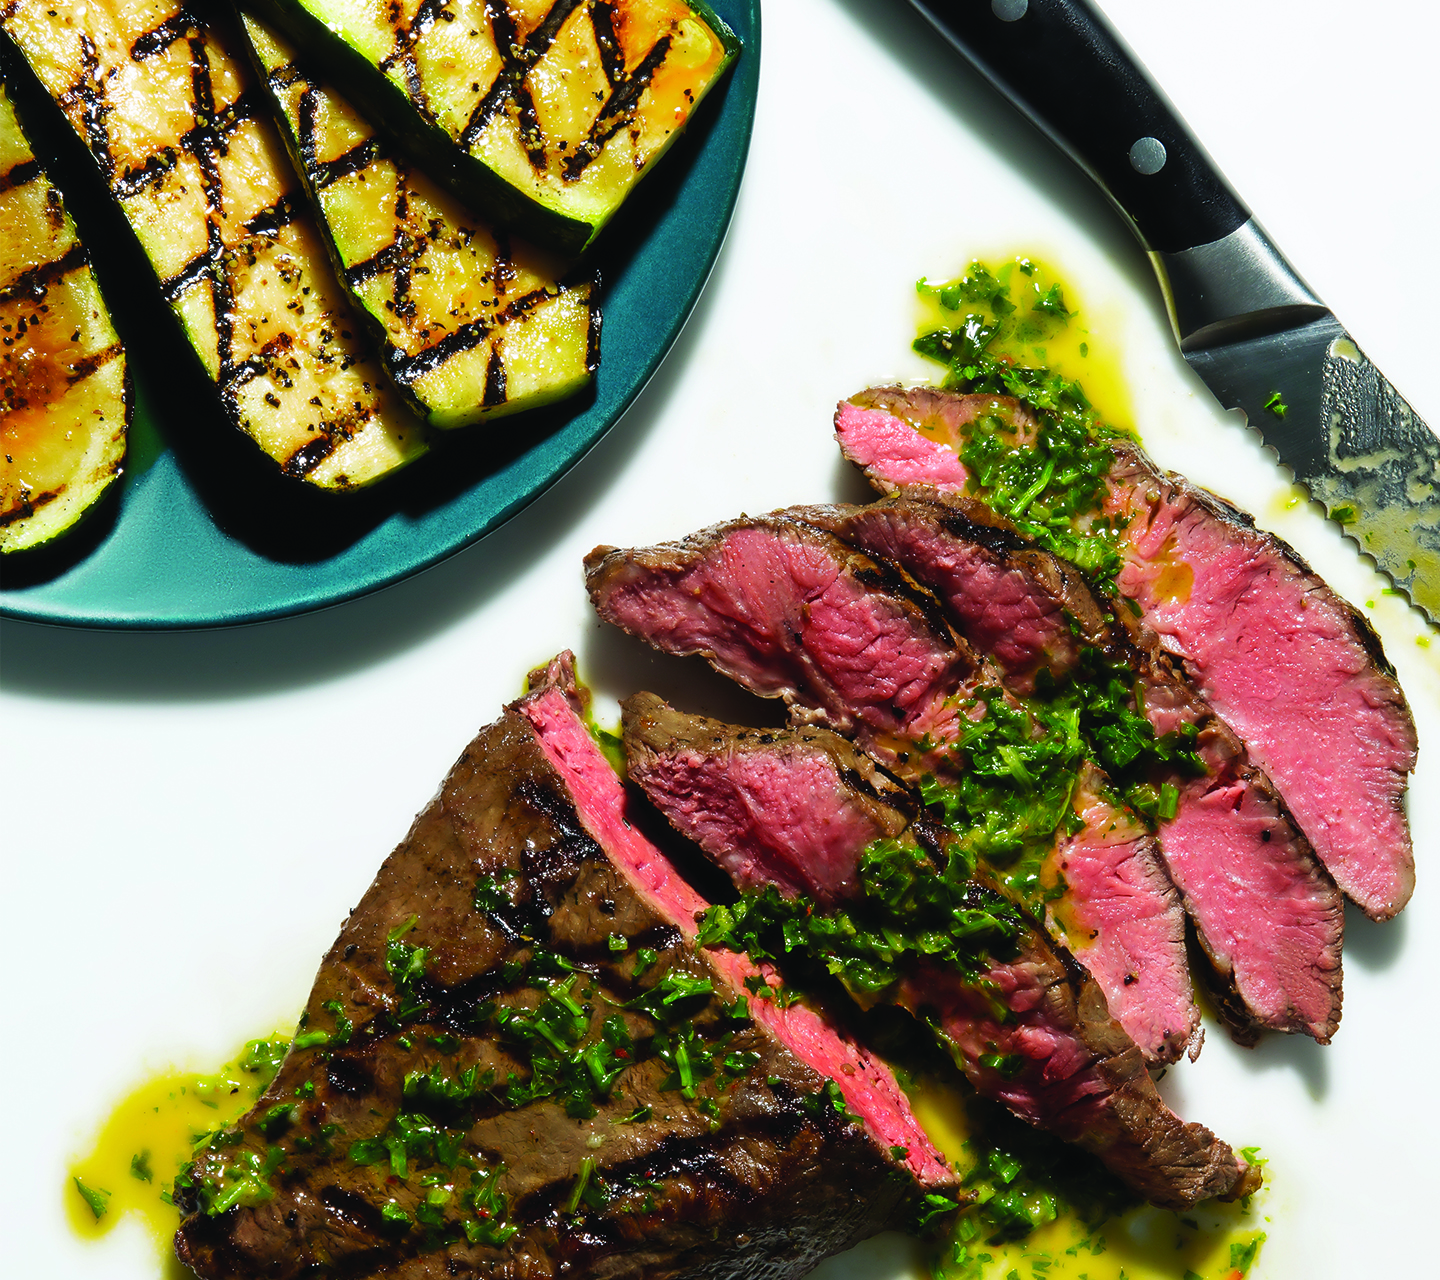 Sous Vide Montreal Spice Flat Iron Steak Recipe by Cuisine Solutions